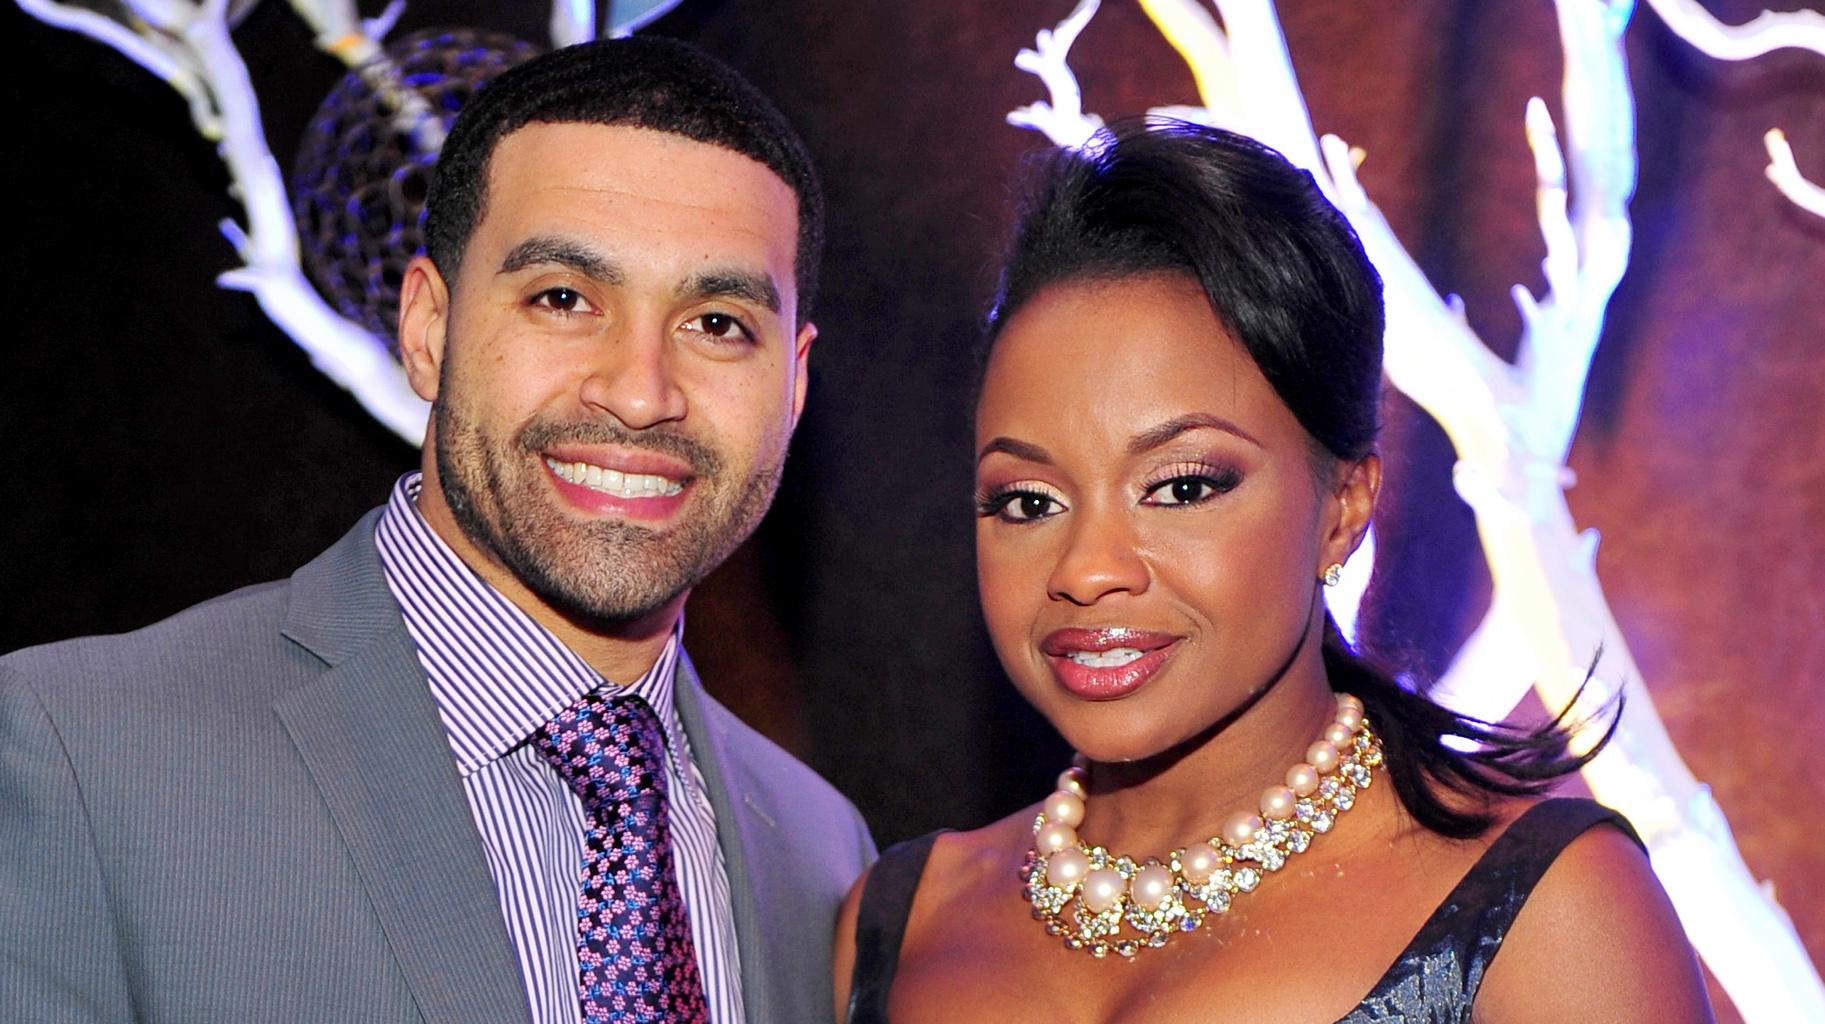 Phaedra Parks Not Surprised Apollo Nida Was Rearrested And Hasn't Heard From Him Since: 'I Can't Make Him Be What He Doesn't Want To Be'